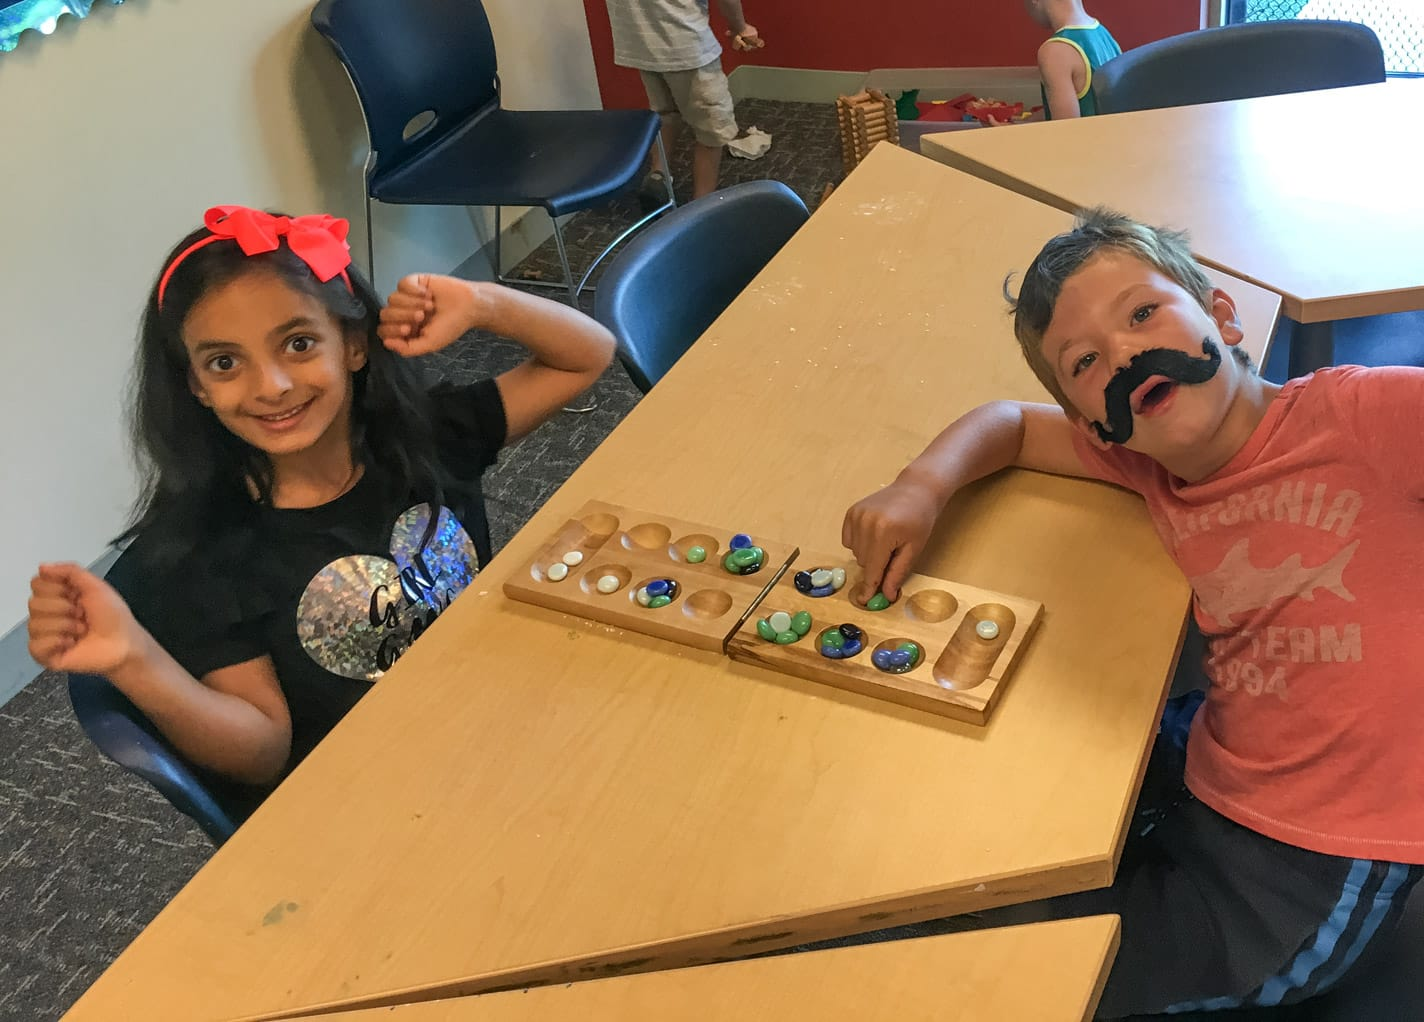 Kids playing mancala indoors